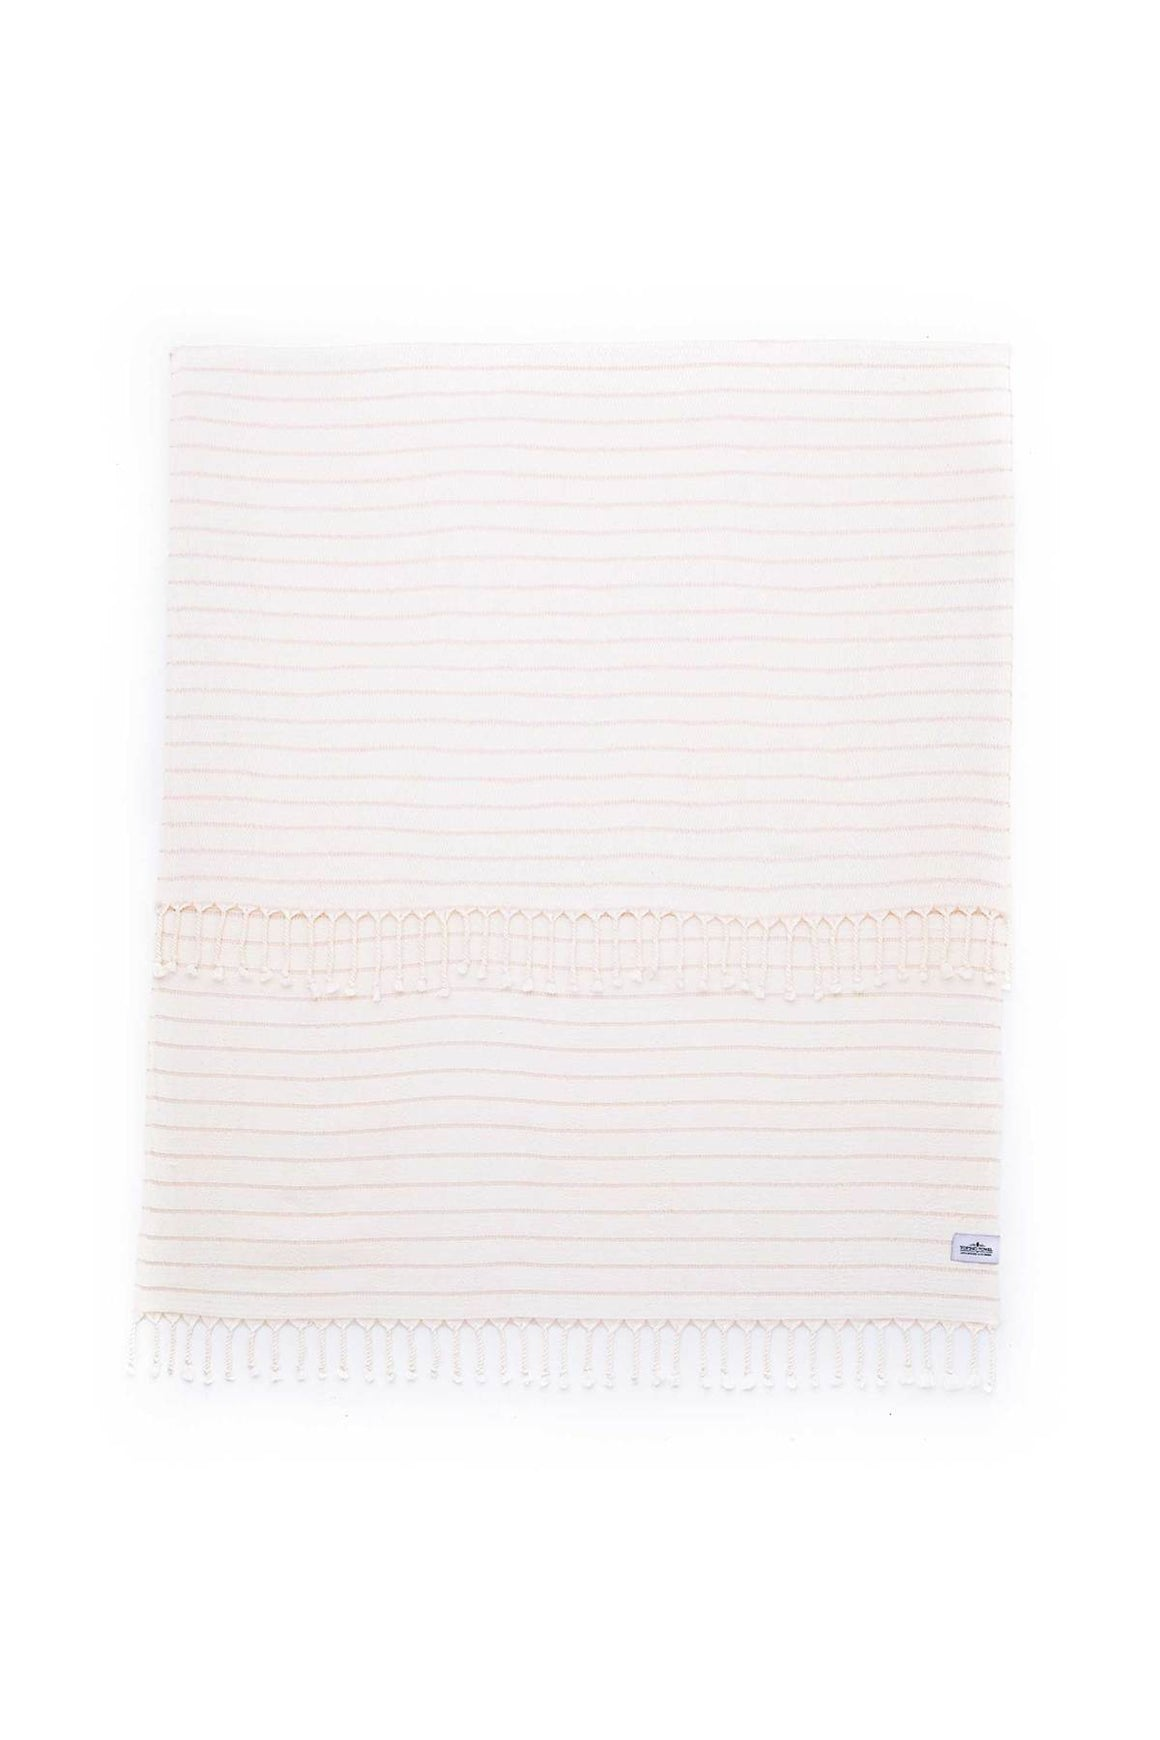 The Willowbrae Towel